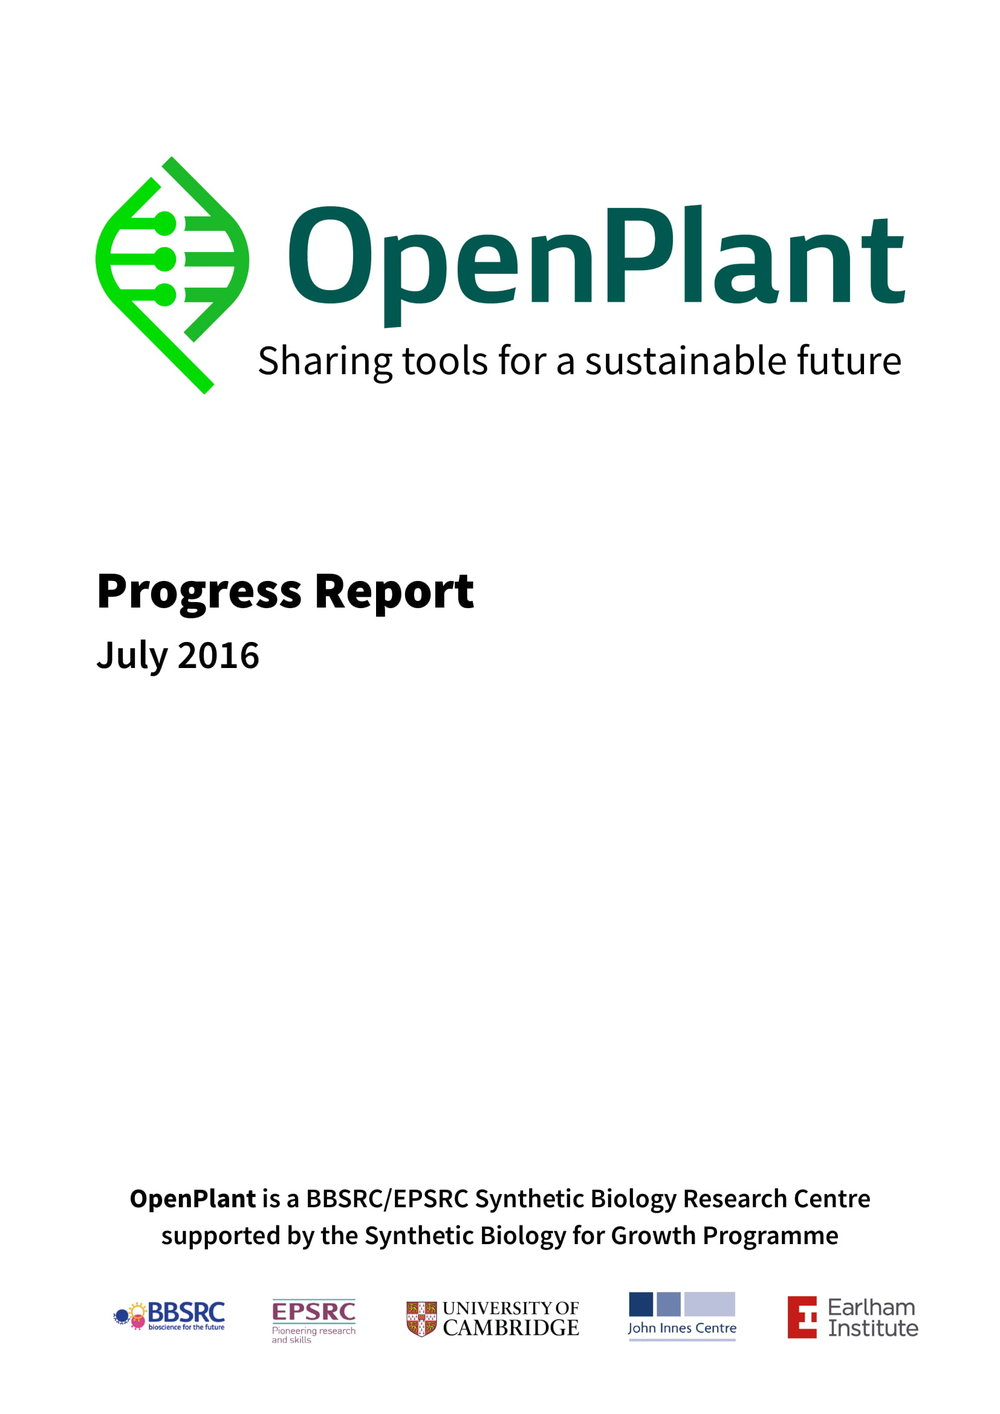 Progress Report 2016